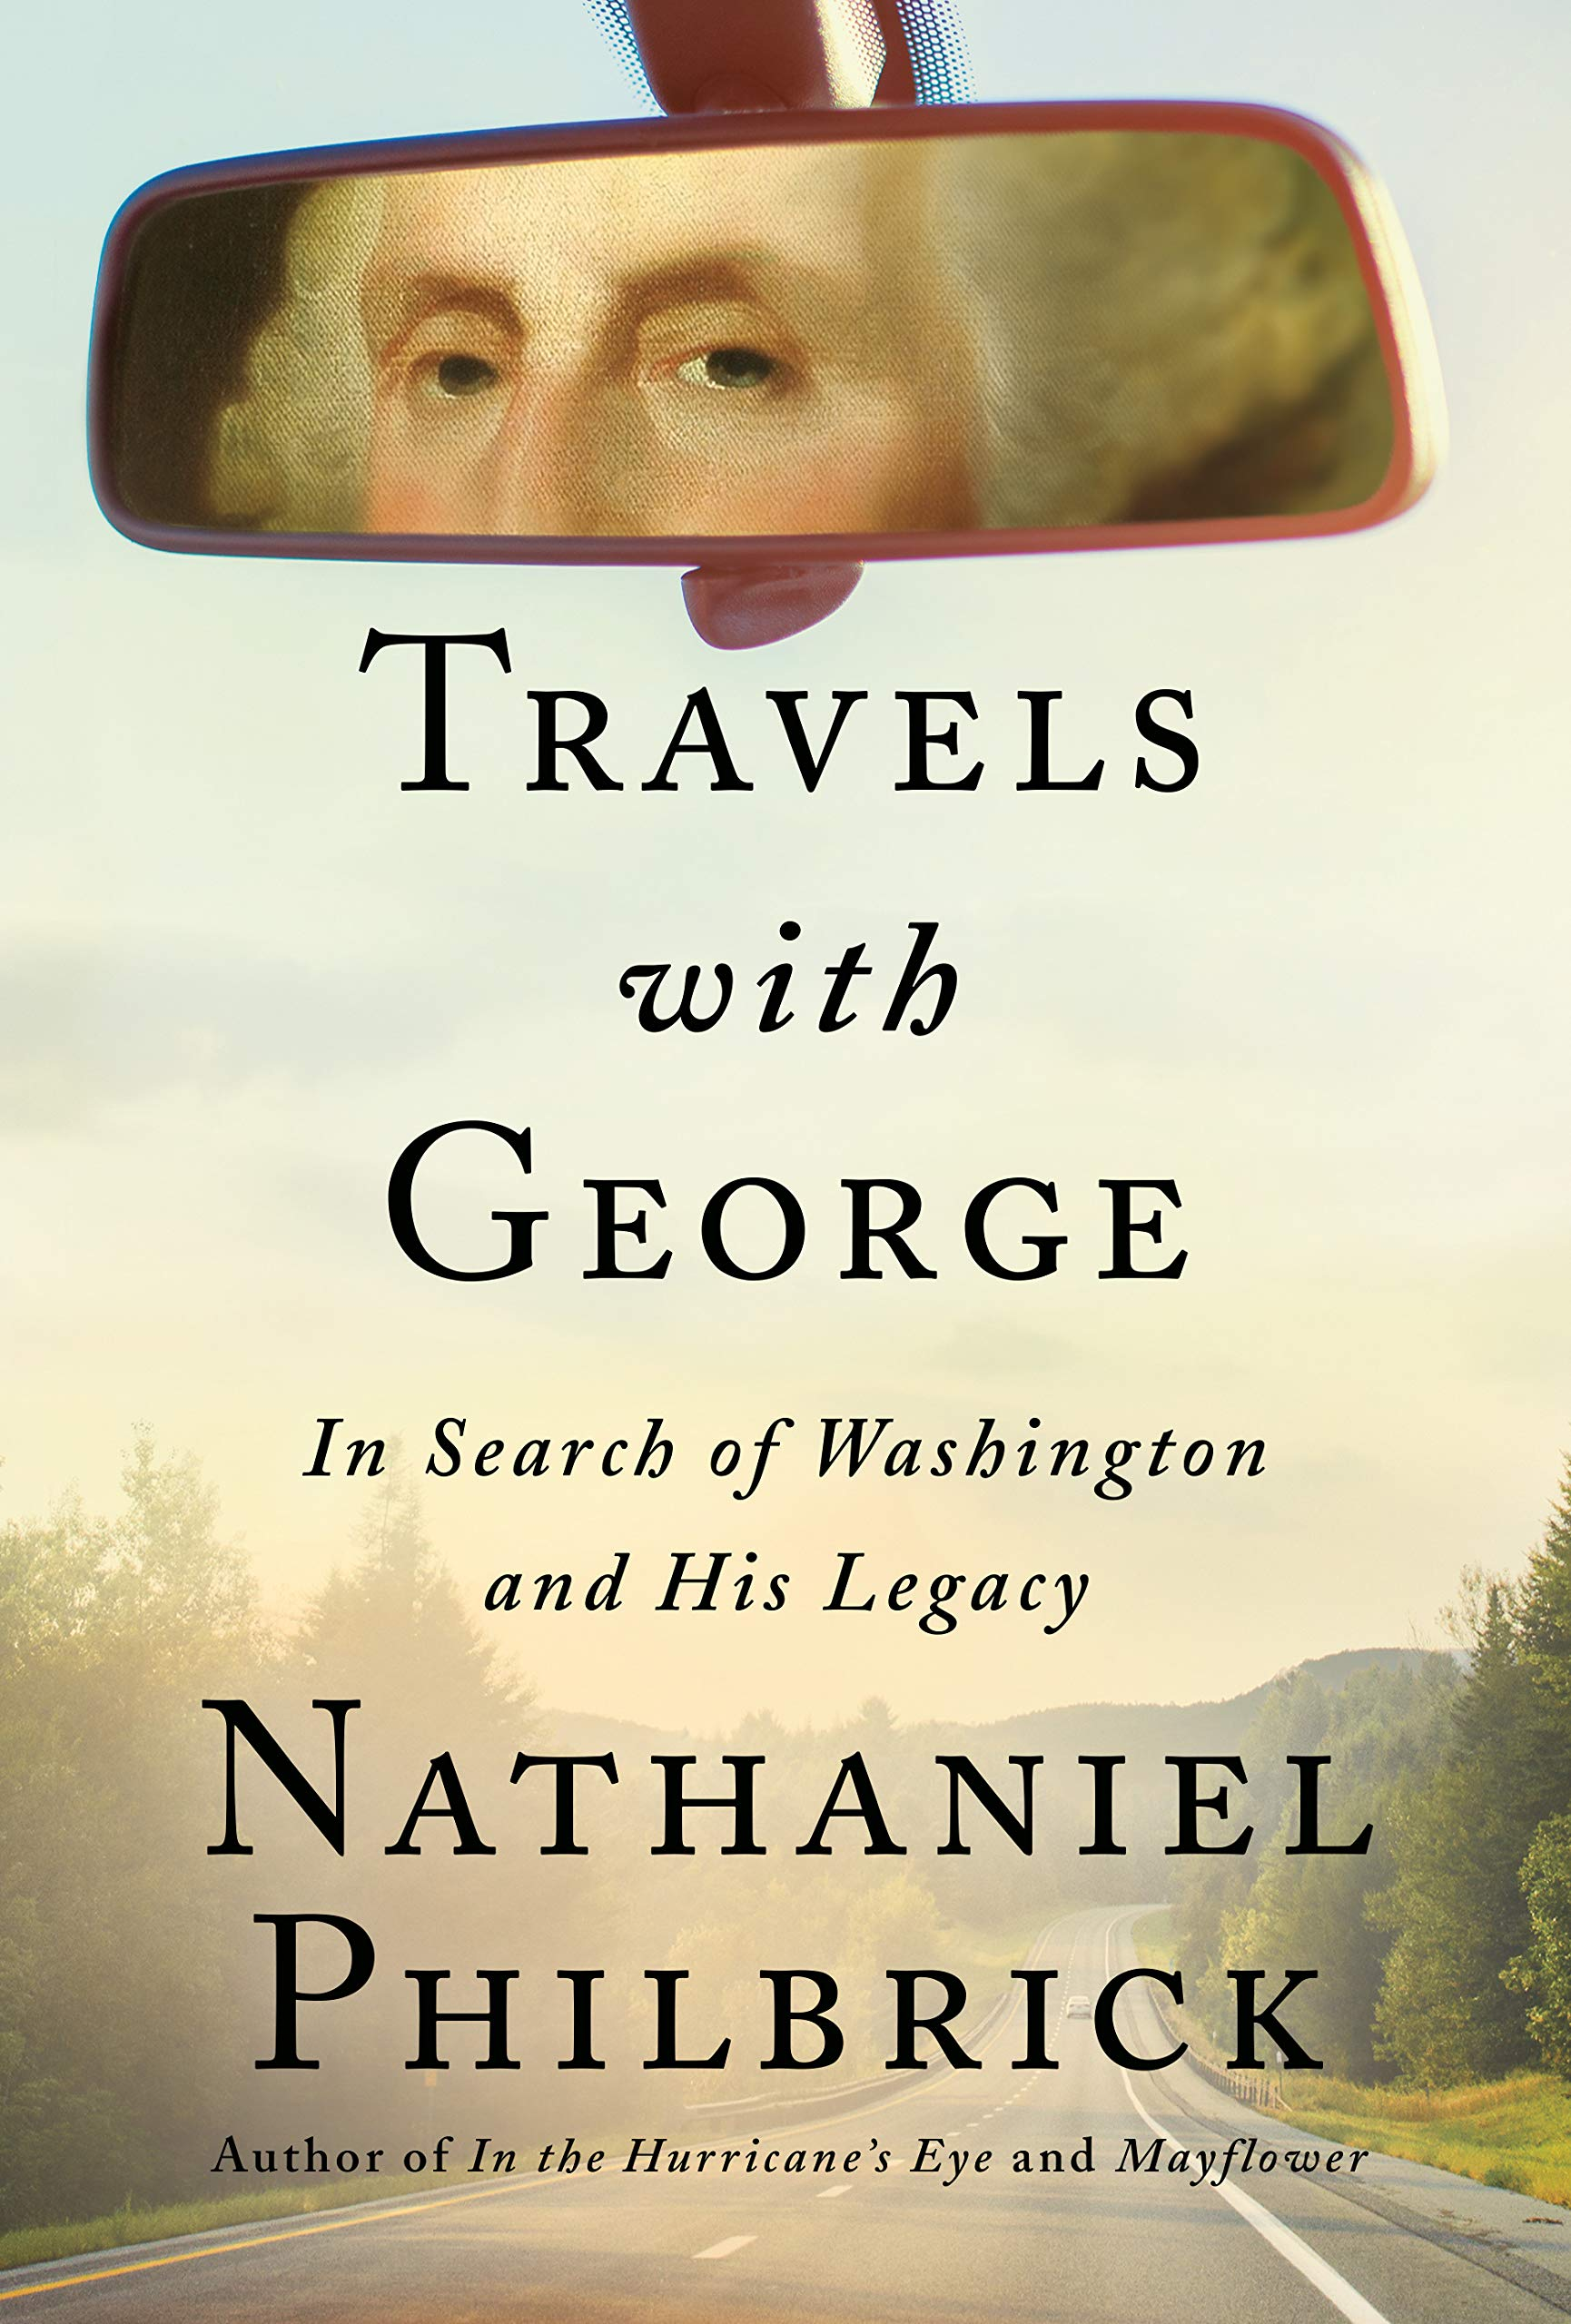 Travels with George